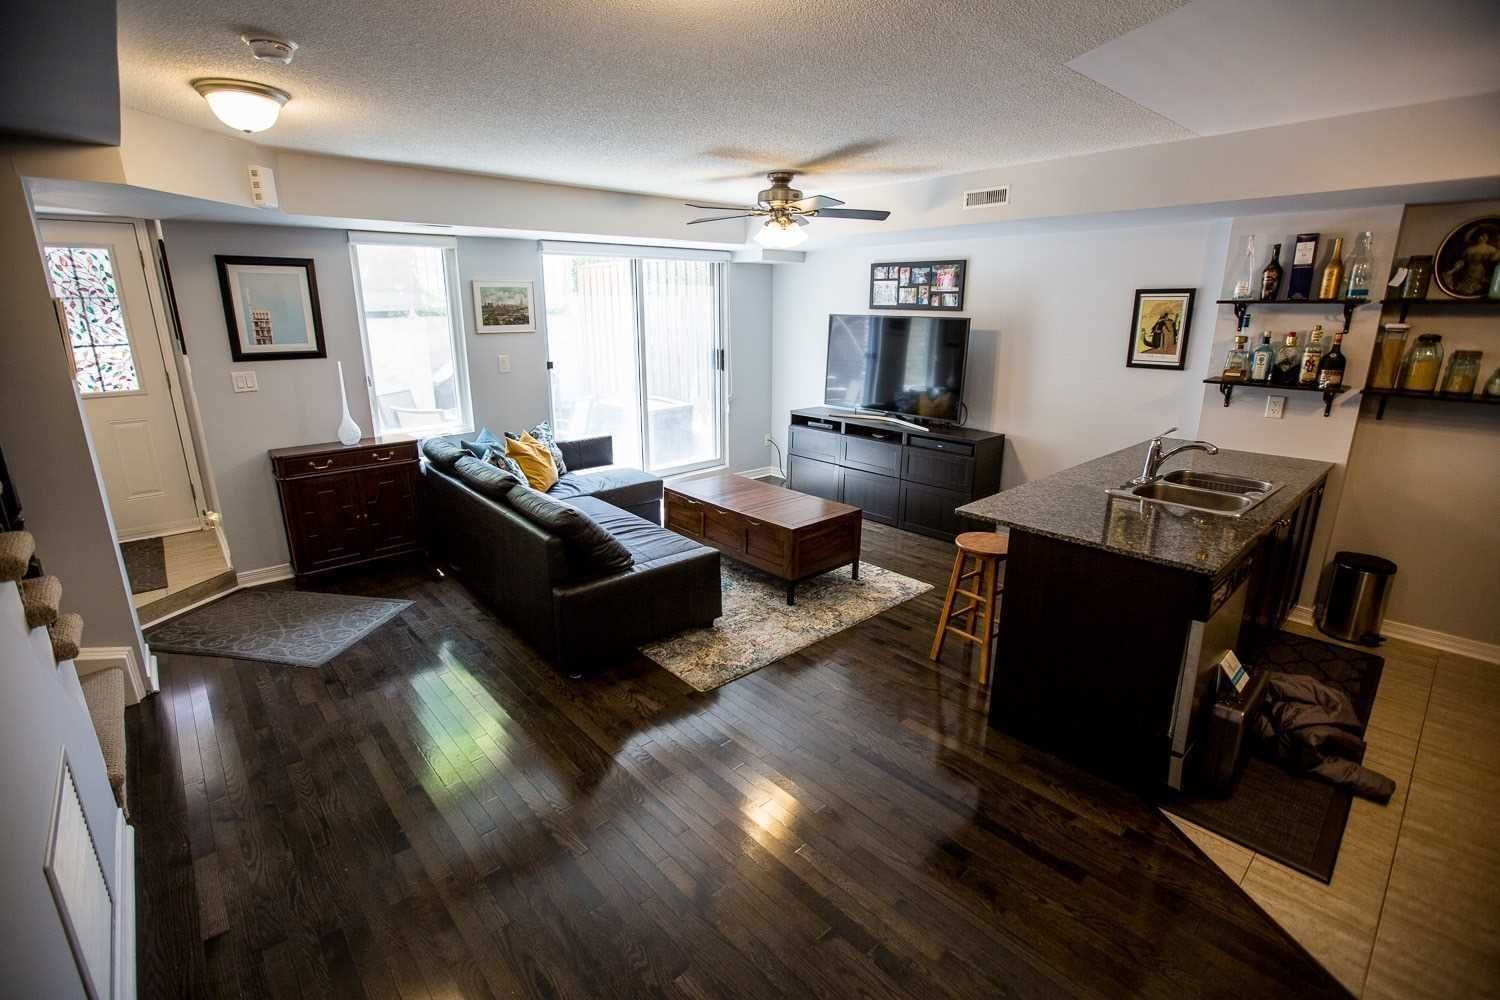 25 Turntable Cres, unit 129 for sale in Toronto - image #2